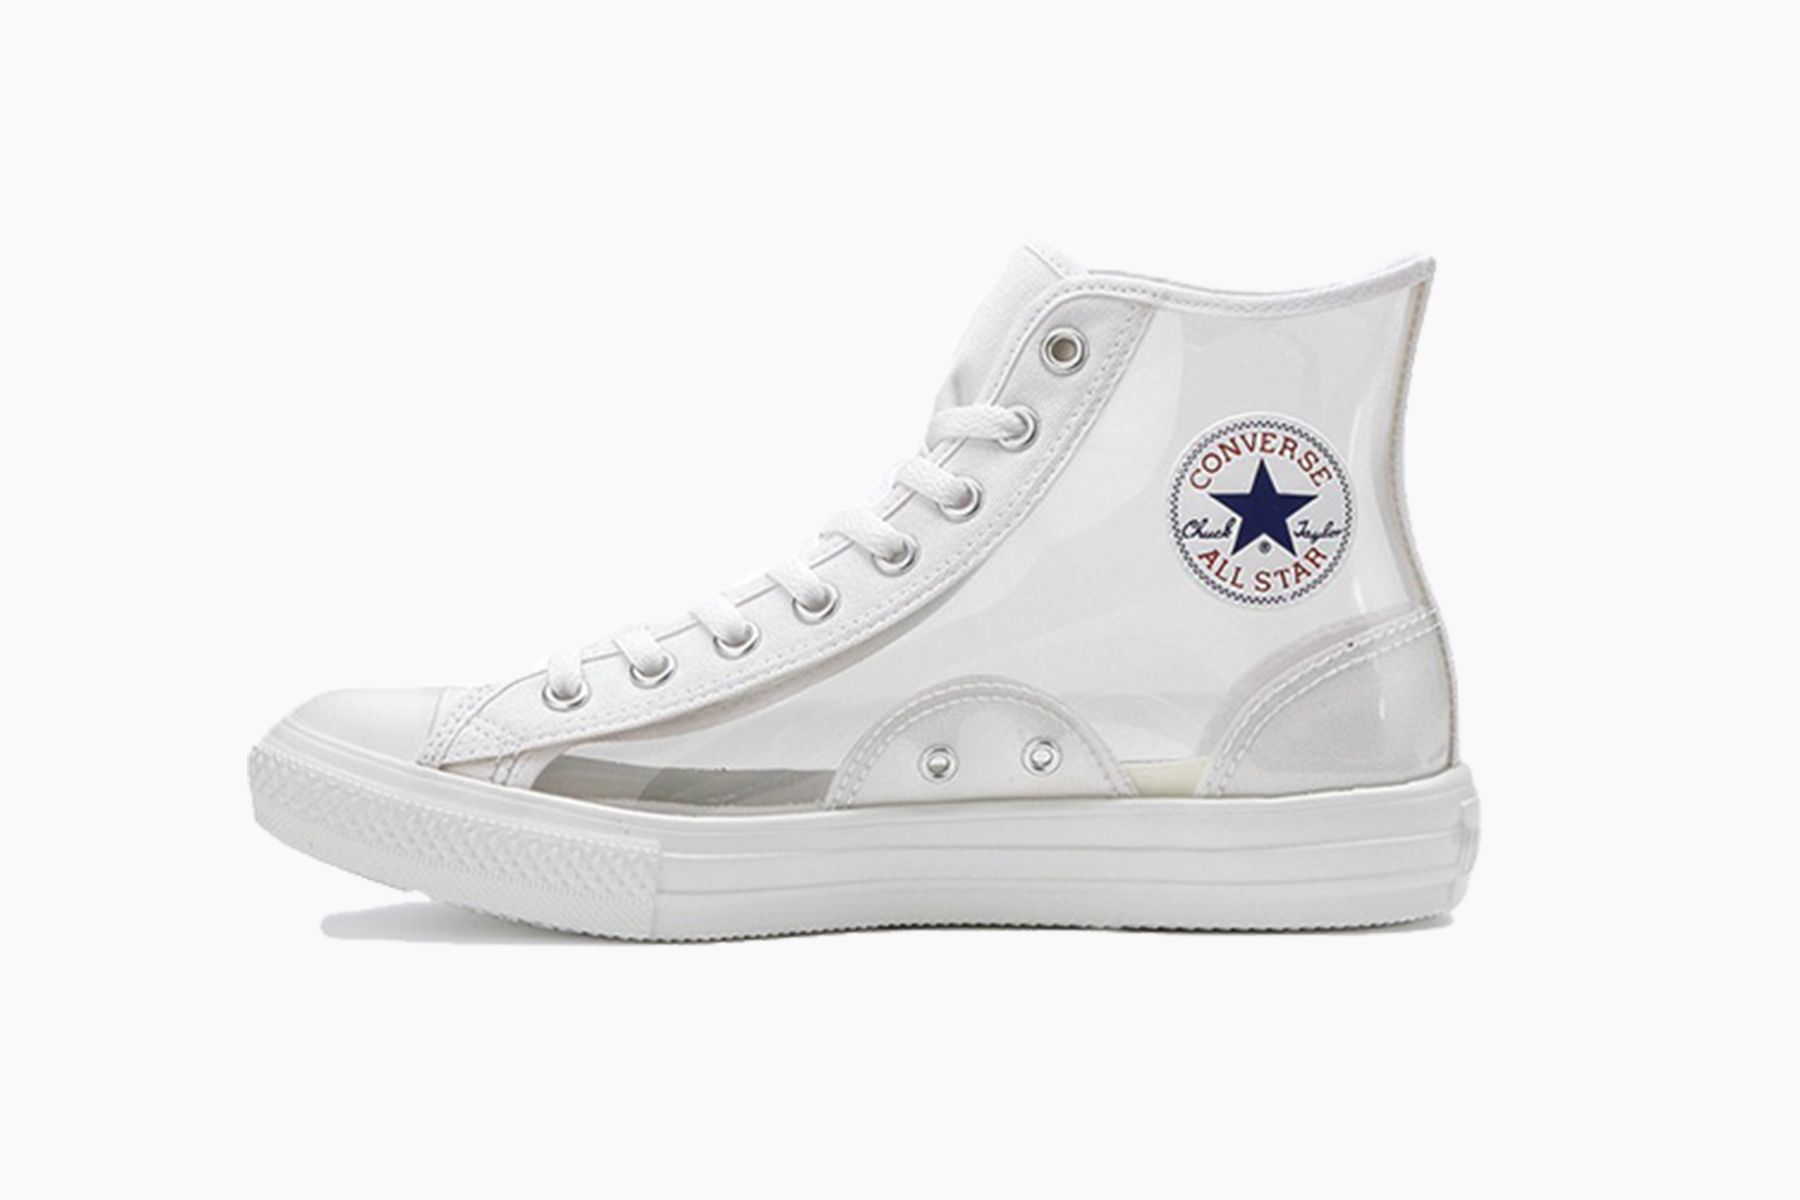 Converse Japan Chuck Taylor Light Clear Material Converse Clear Converse Me Too Shoes